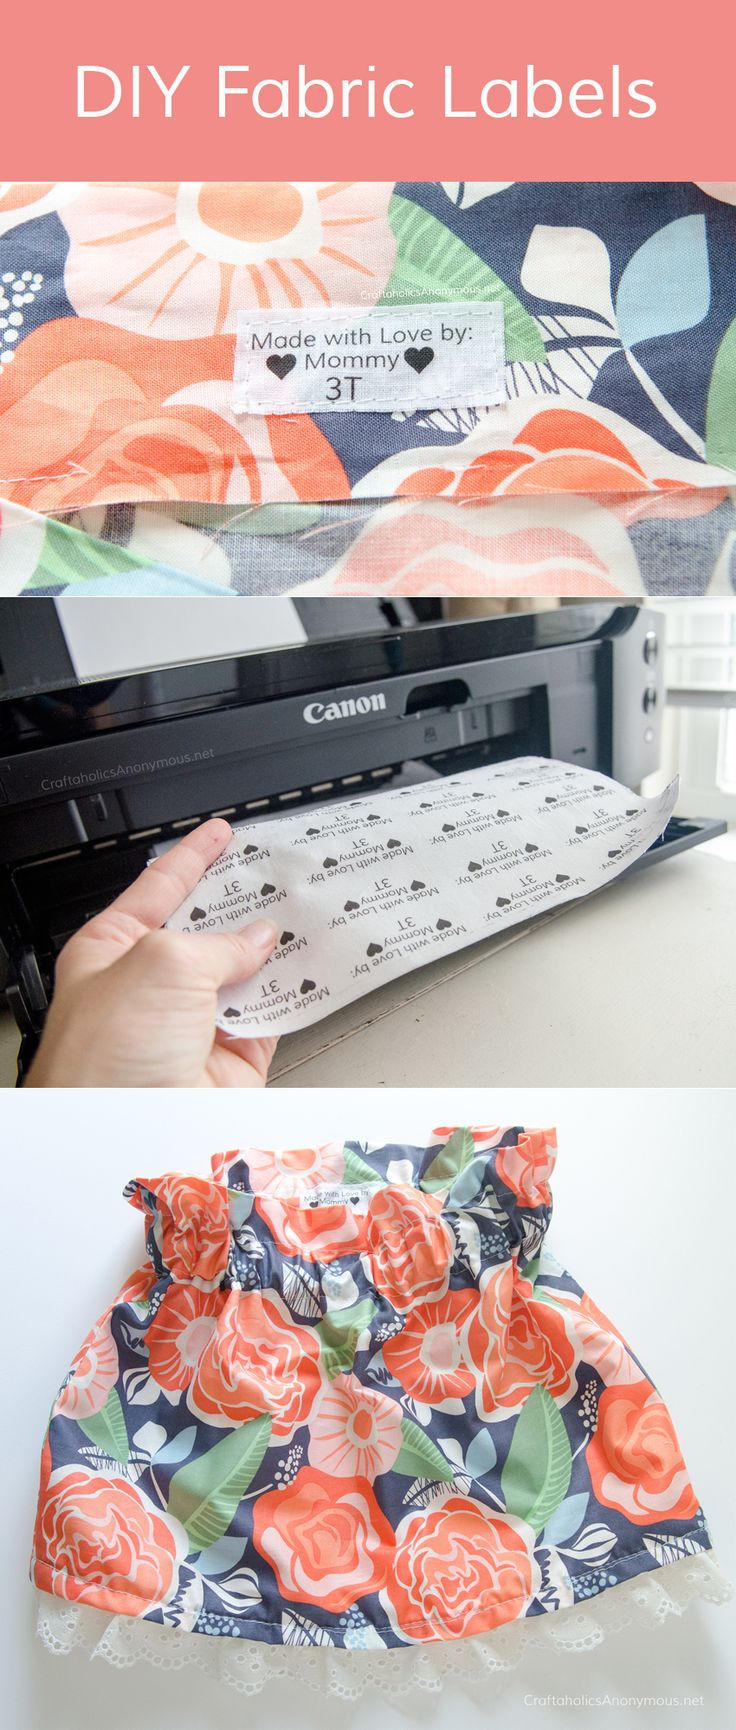 Make your own DIY Fabric Labels with your printer! @CanonUSA #sponsored